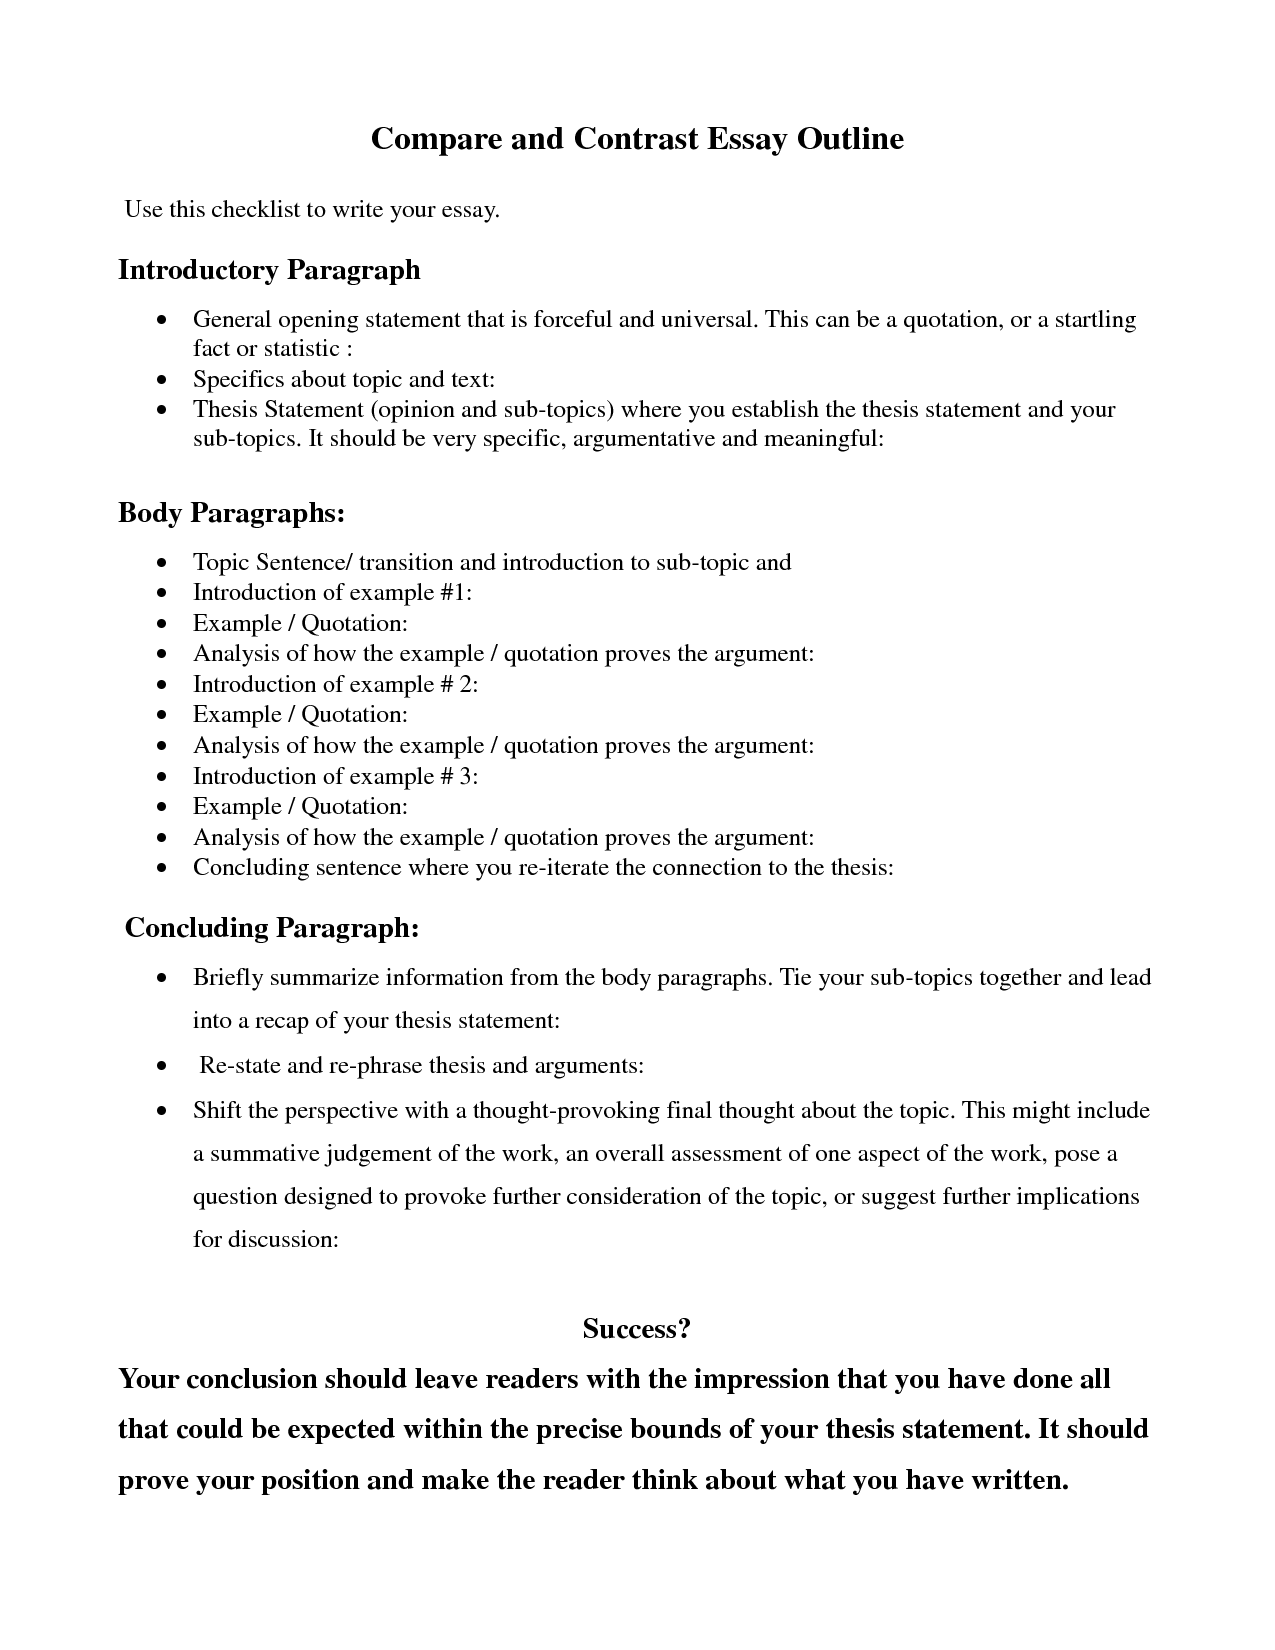 Comparecontrast Essay Outline  Google Search  Education  Thesis  Comparecontrast Essay Outline  Google Search Exle Of A Thesis Statement